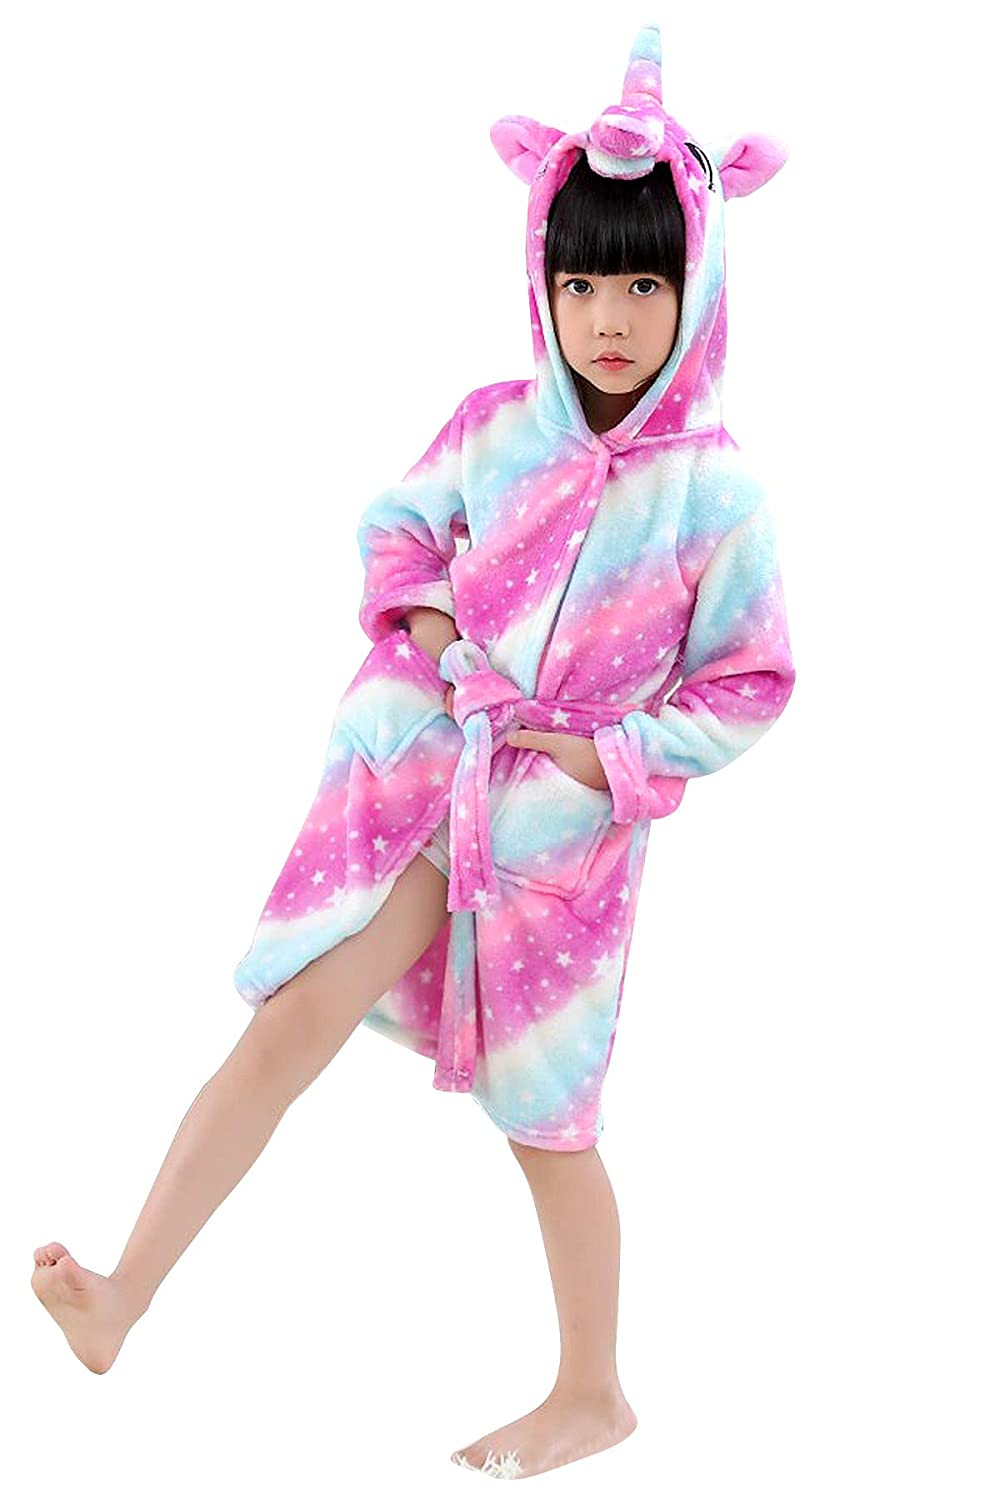 f9298e5fc0 Amazon.com  JOXJOZ Kids Unicorn Hooded Bathrobes Flannel Robe Pajamas  Unisex Animal Sleepwear Gift  Clothing